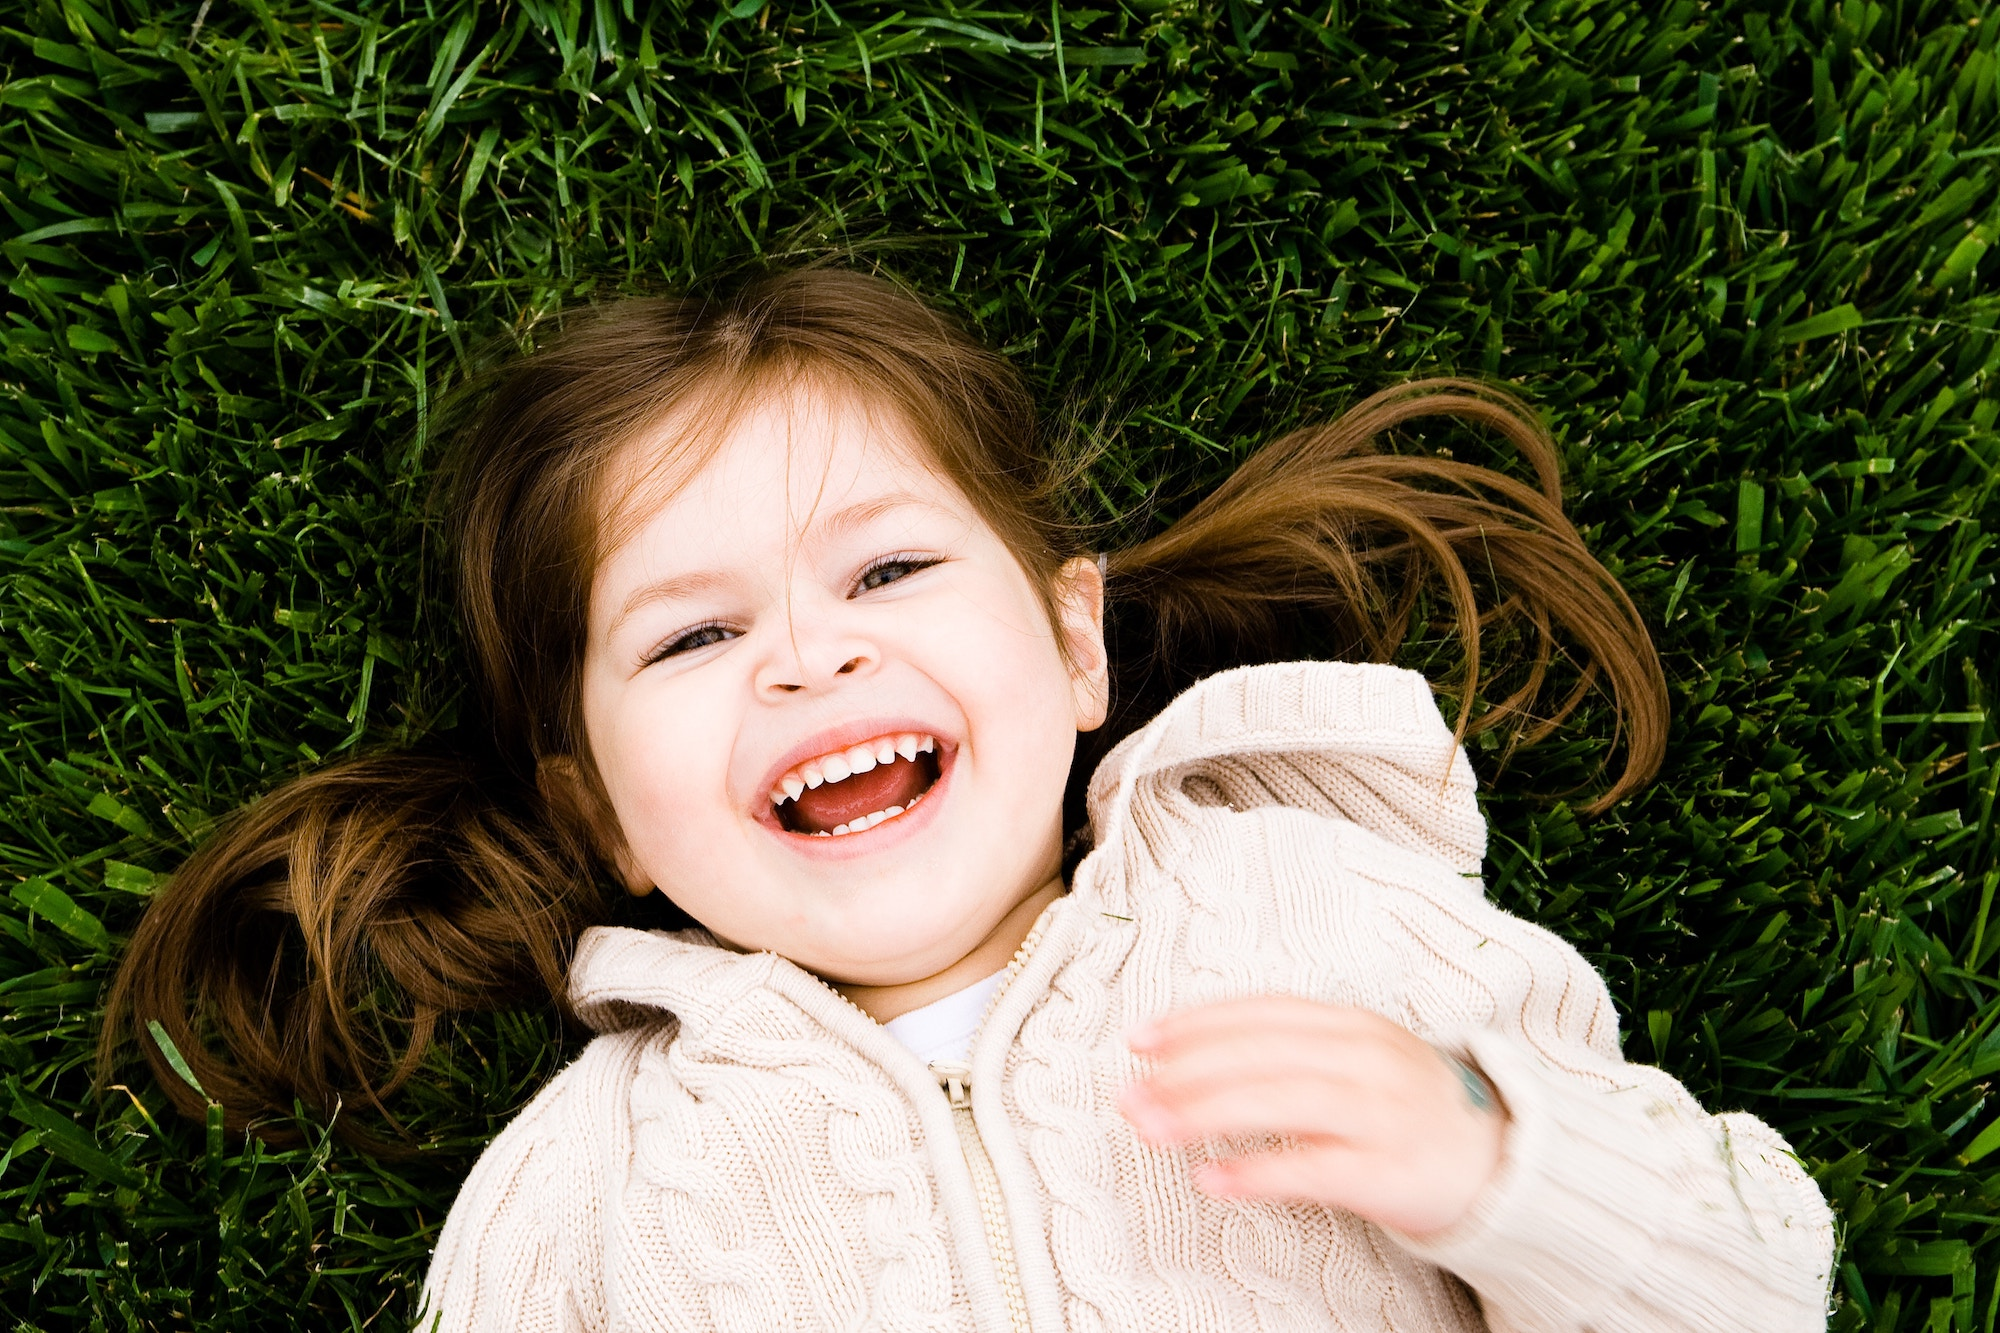 Little girl laying on grass in a pink jacket, smiling as the camera captures her from above.